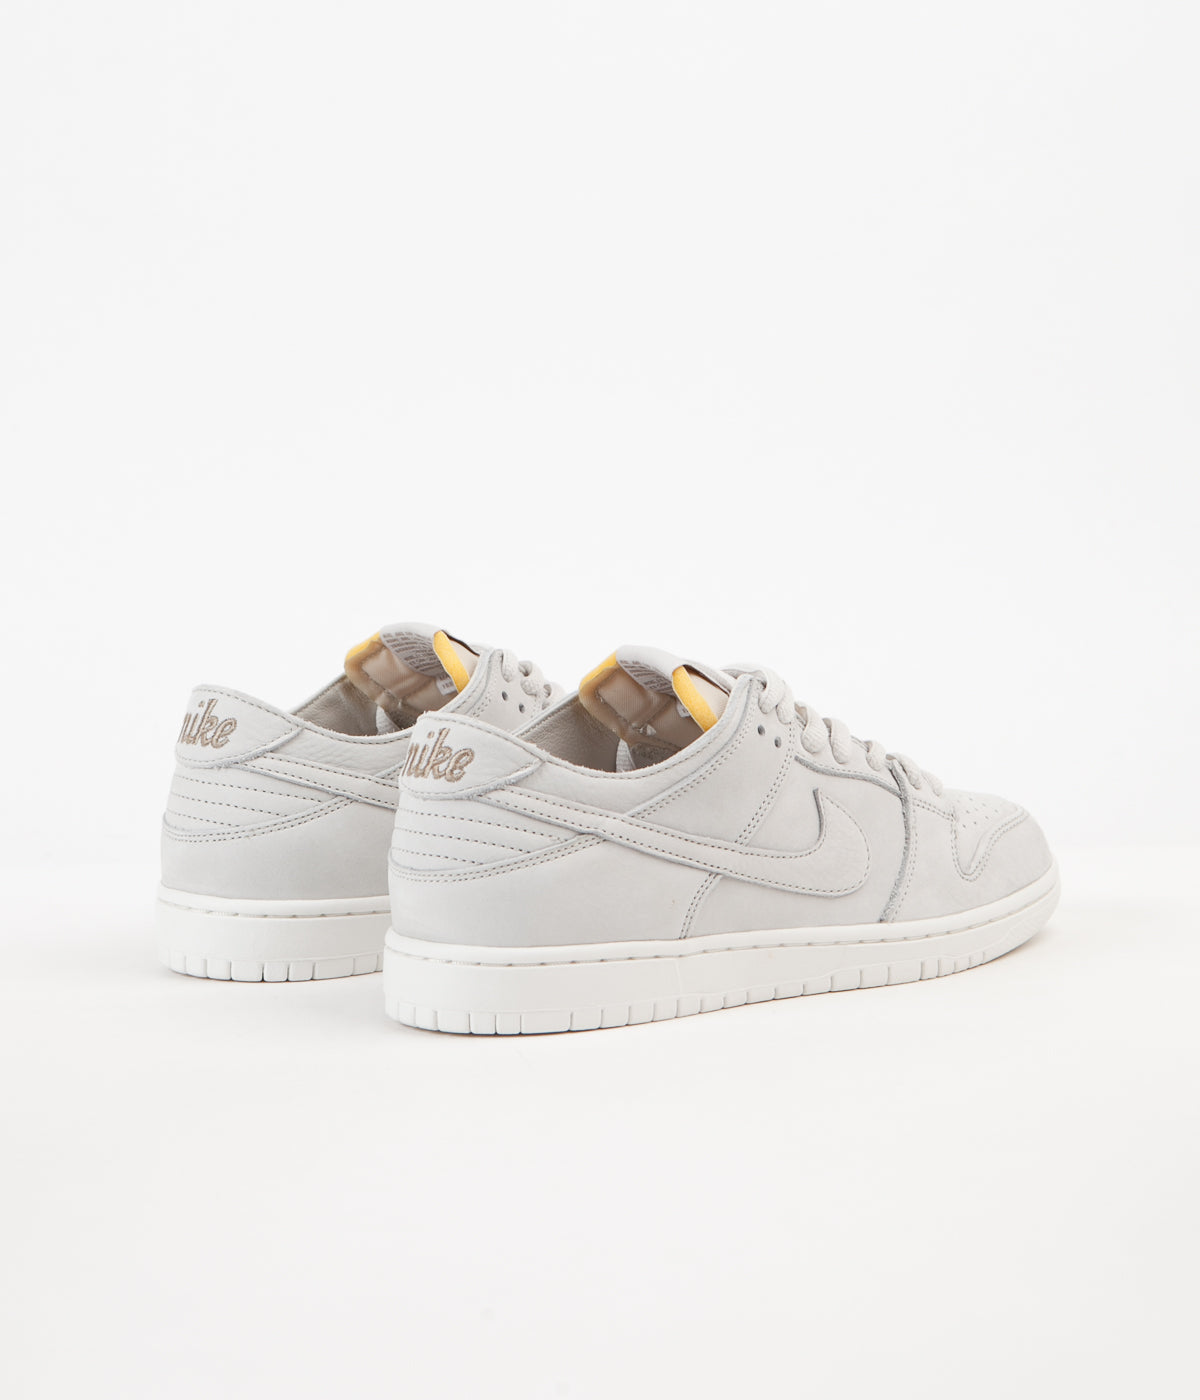 98e2ae2ebcb2 ... Nike SB Dunk Low Pro Deconstructed Shoes - Light Bone   Light Bone - Summit  White ...